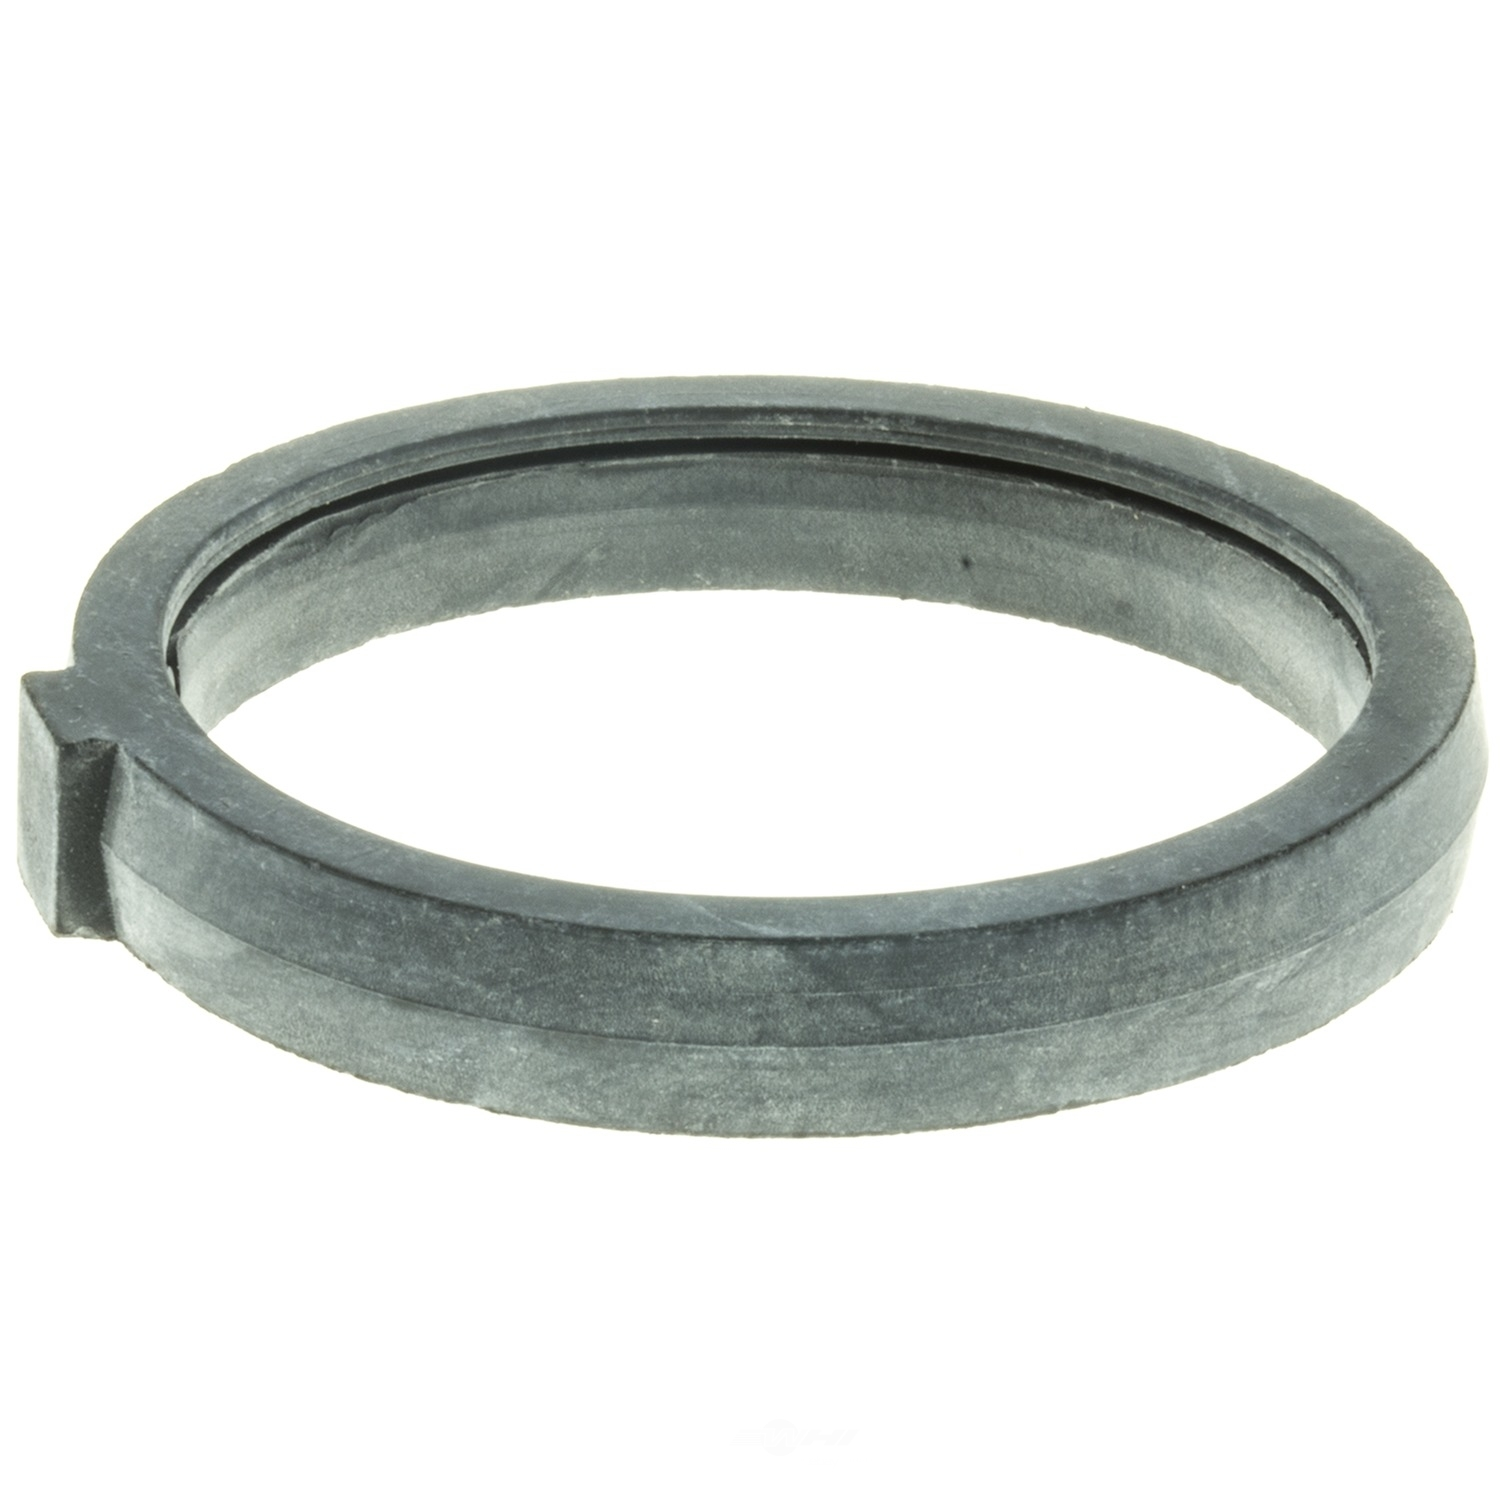 STANT - Thermostat Seal - STN 27288